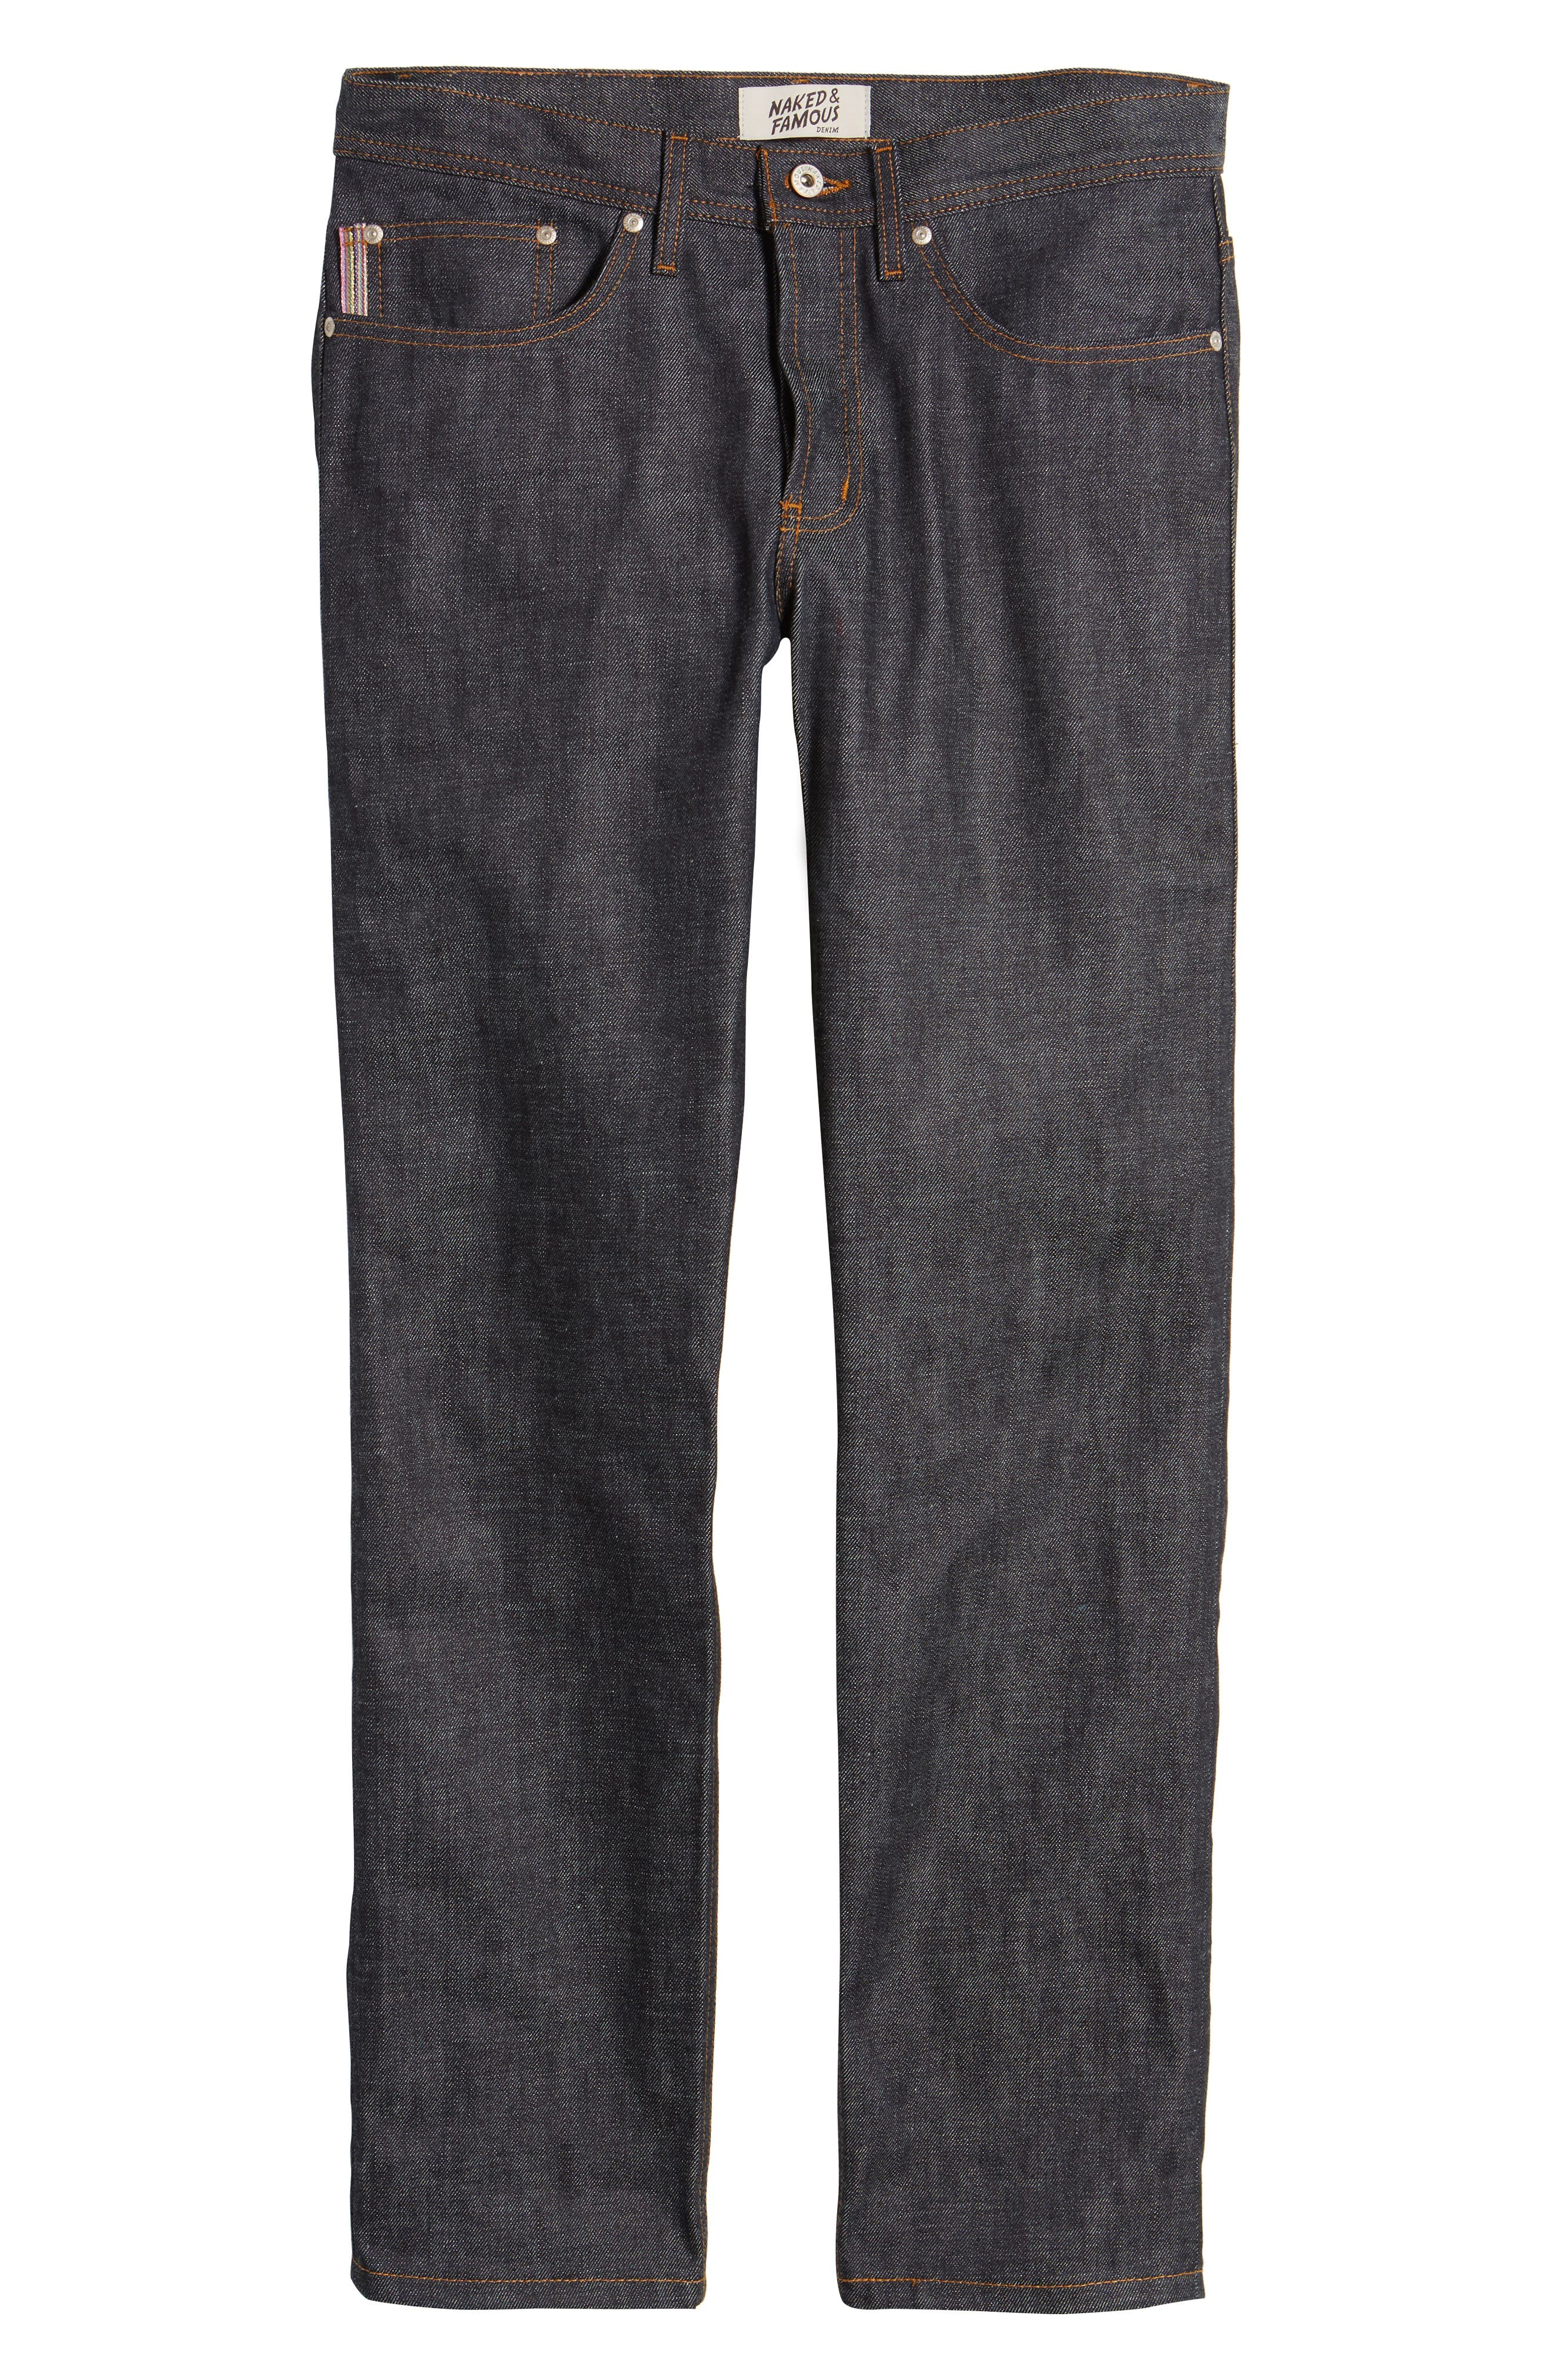 Weird Guy Slim Fit Jeans,                             Alternate thumbnail 6, color,                             401